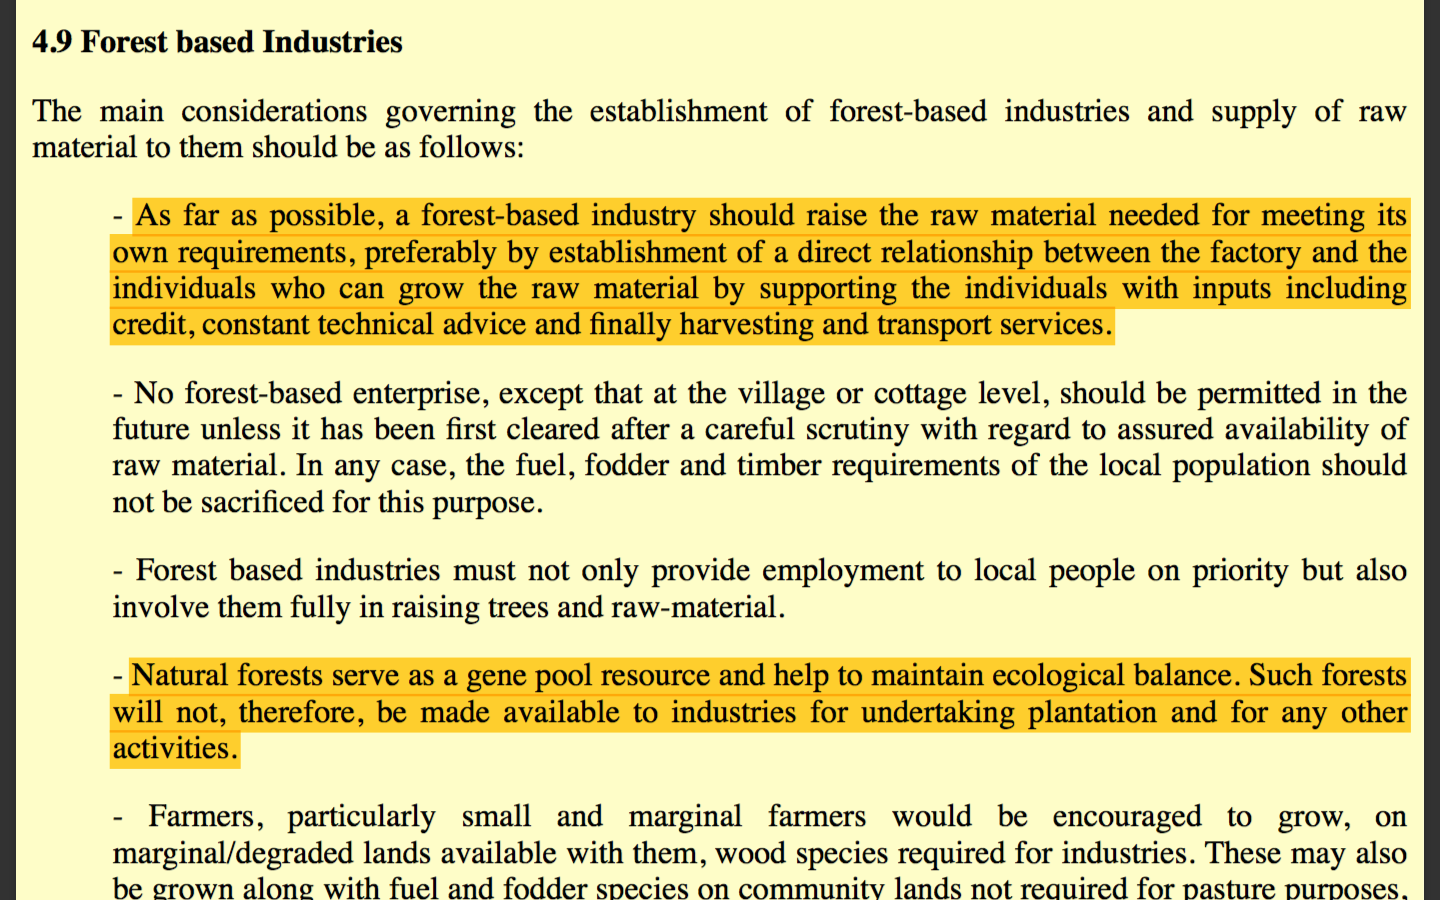 Extract of the 1988 National Forest Policy that banned the use of natural forests for plantations by private parties.